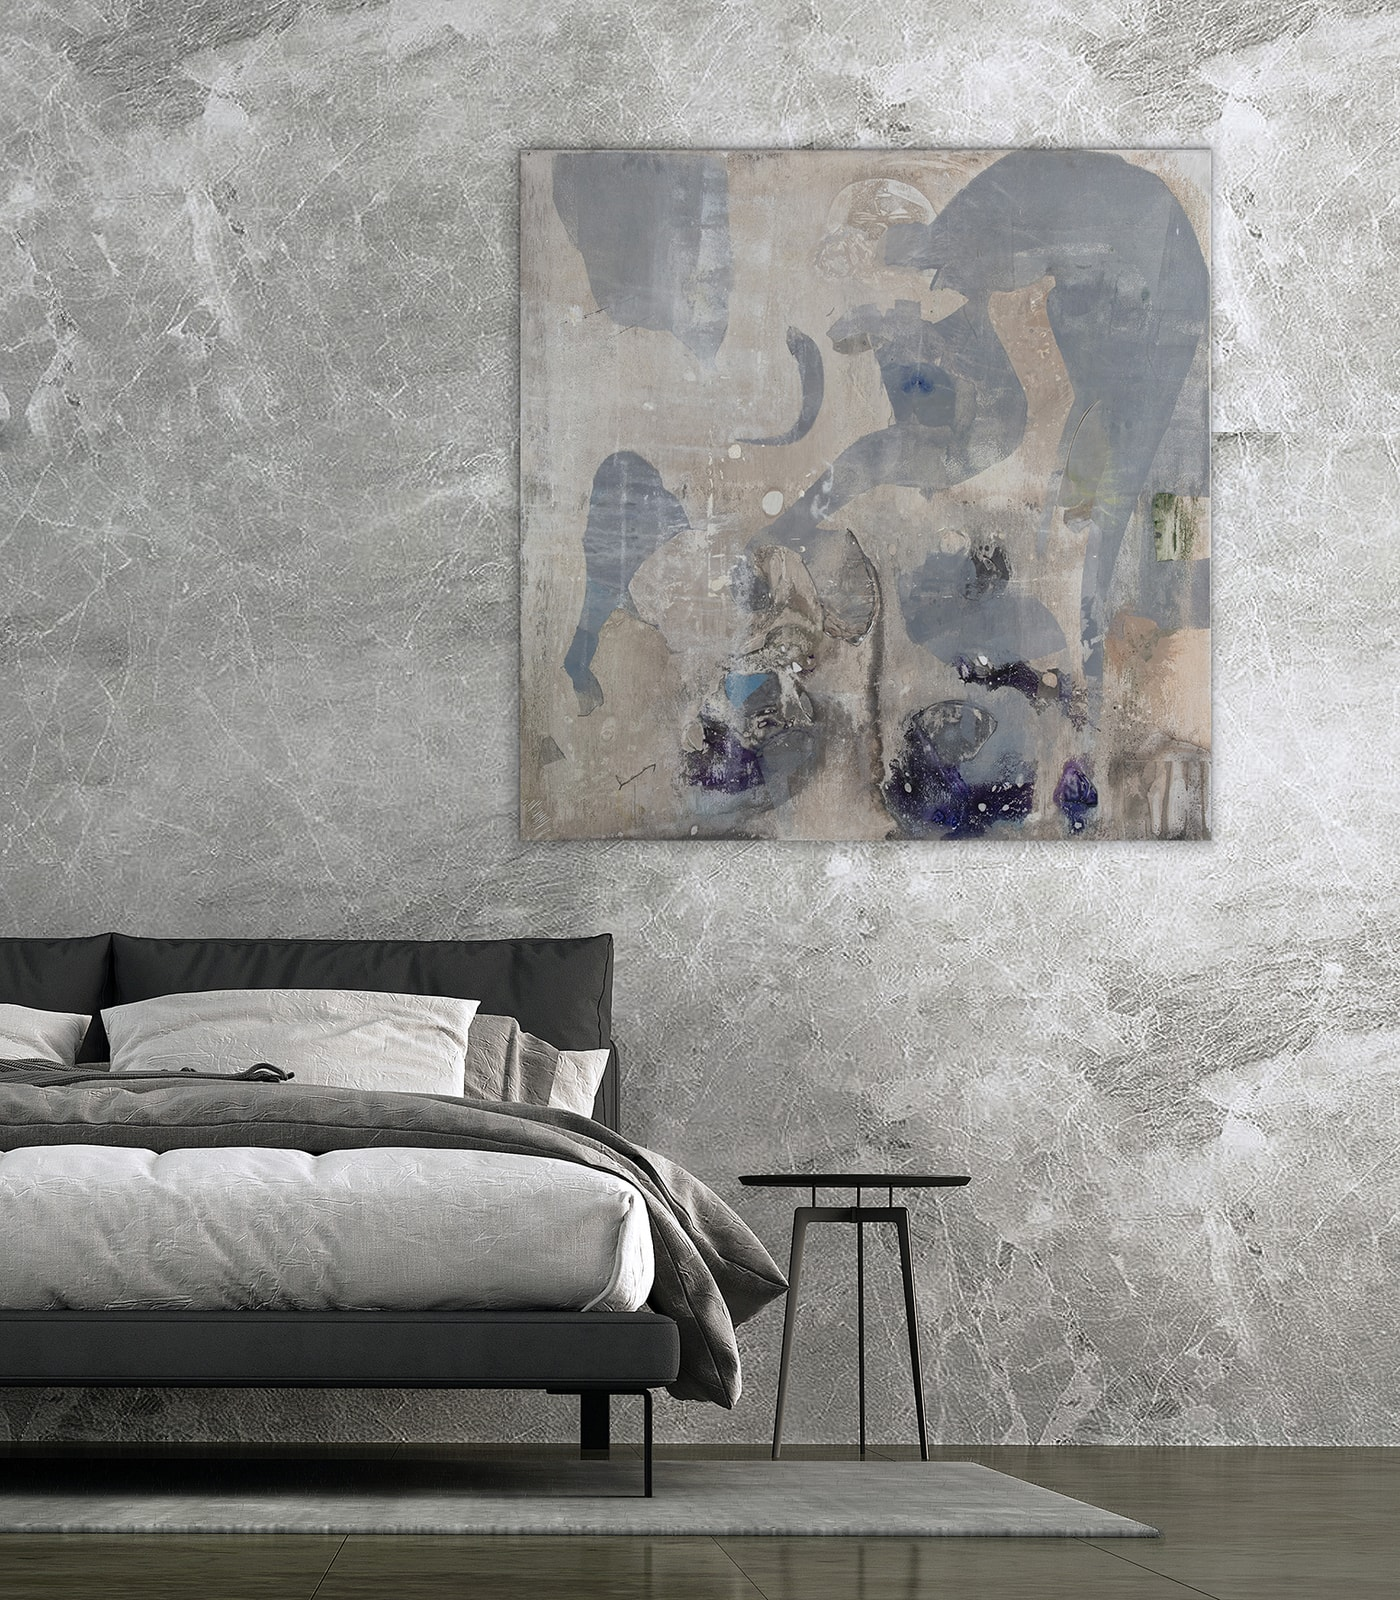 Minimal Nordic Bedroom Interior Design And Marble Wall Texture B